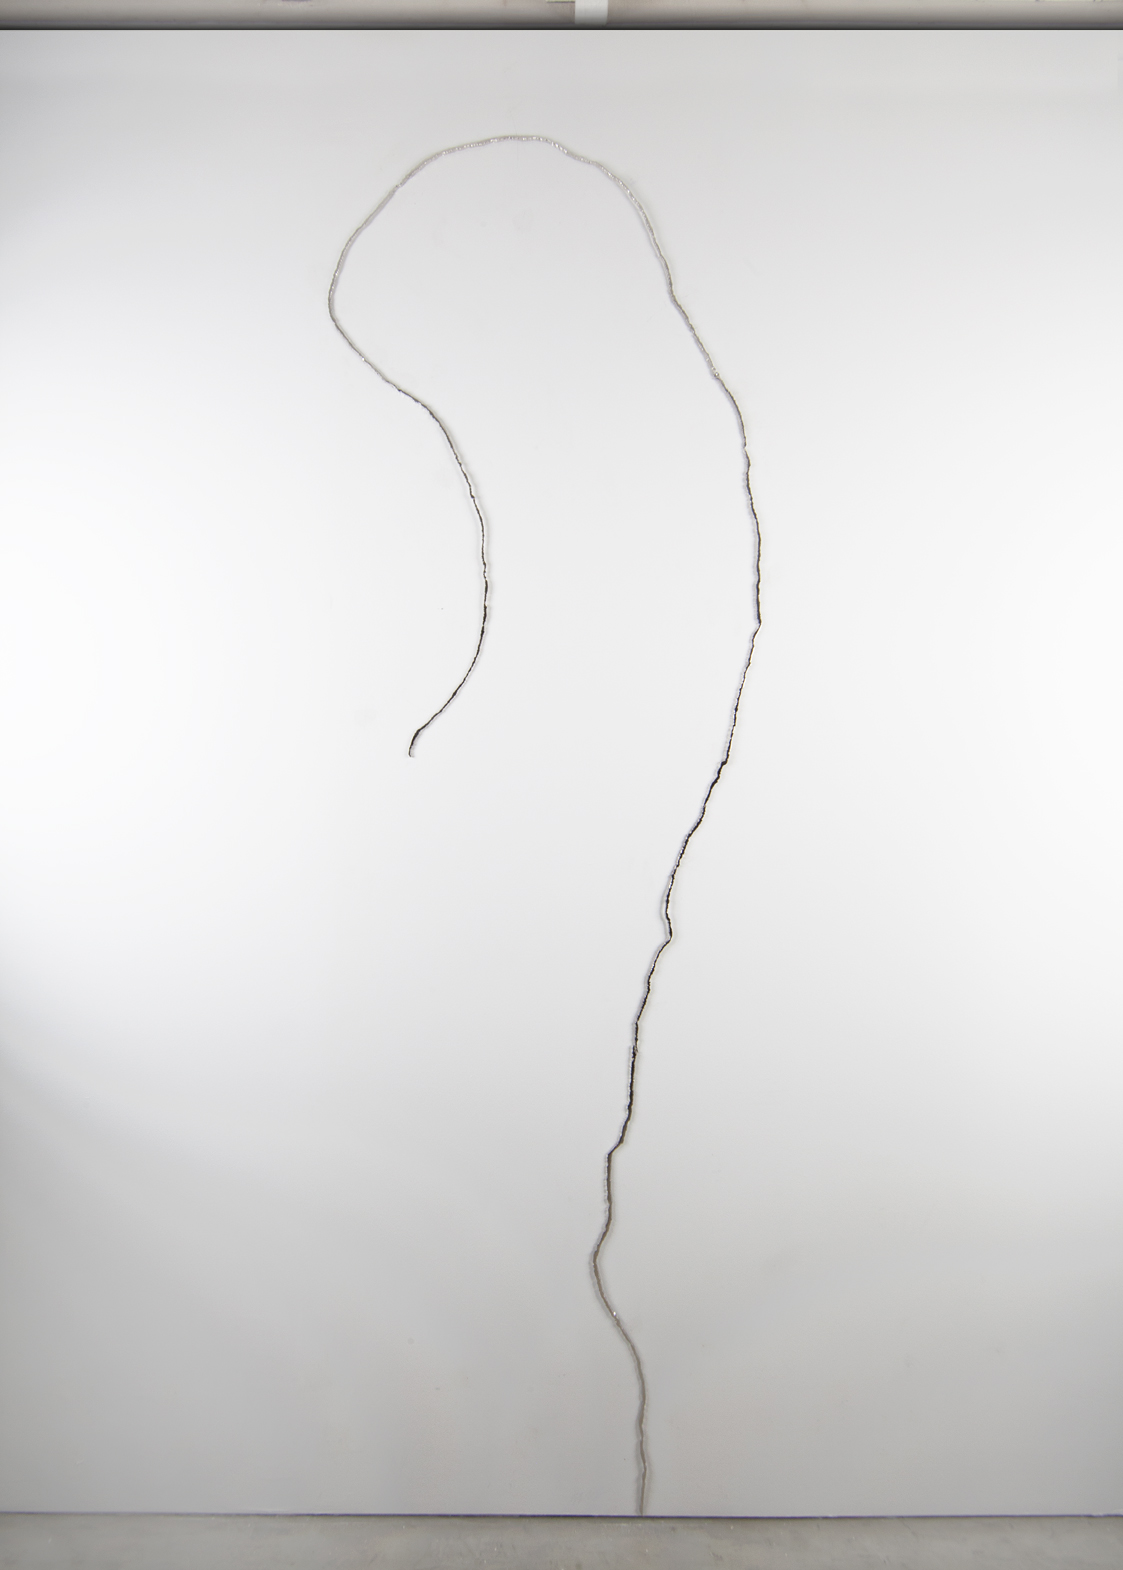 MIsteriosa, Nickel plated and mirror polished steel, 118 X 36 X 1/4 inches